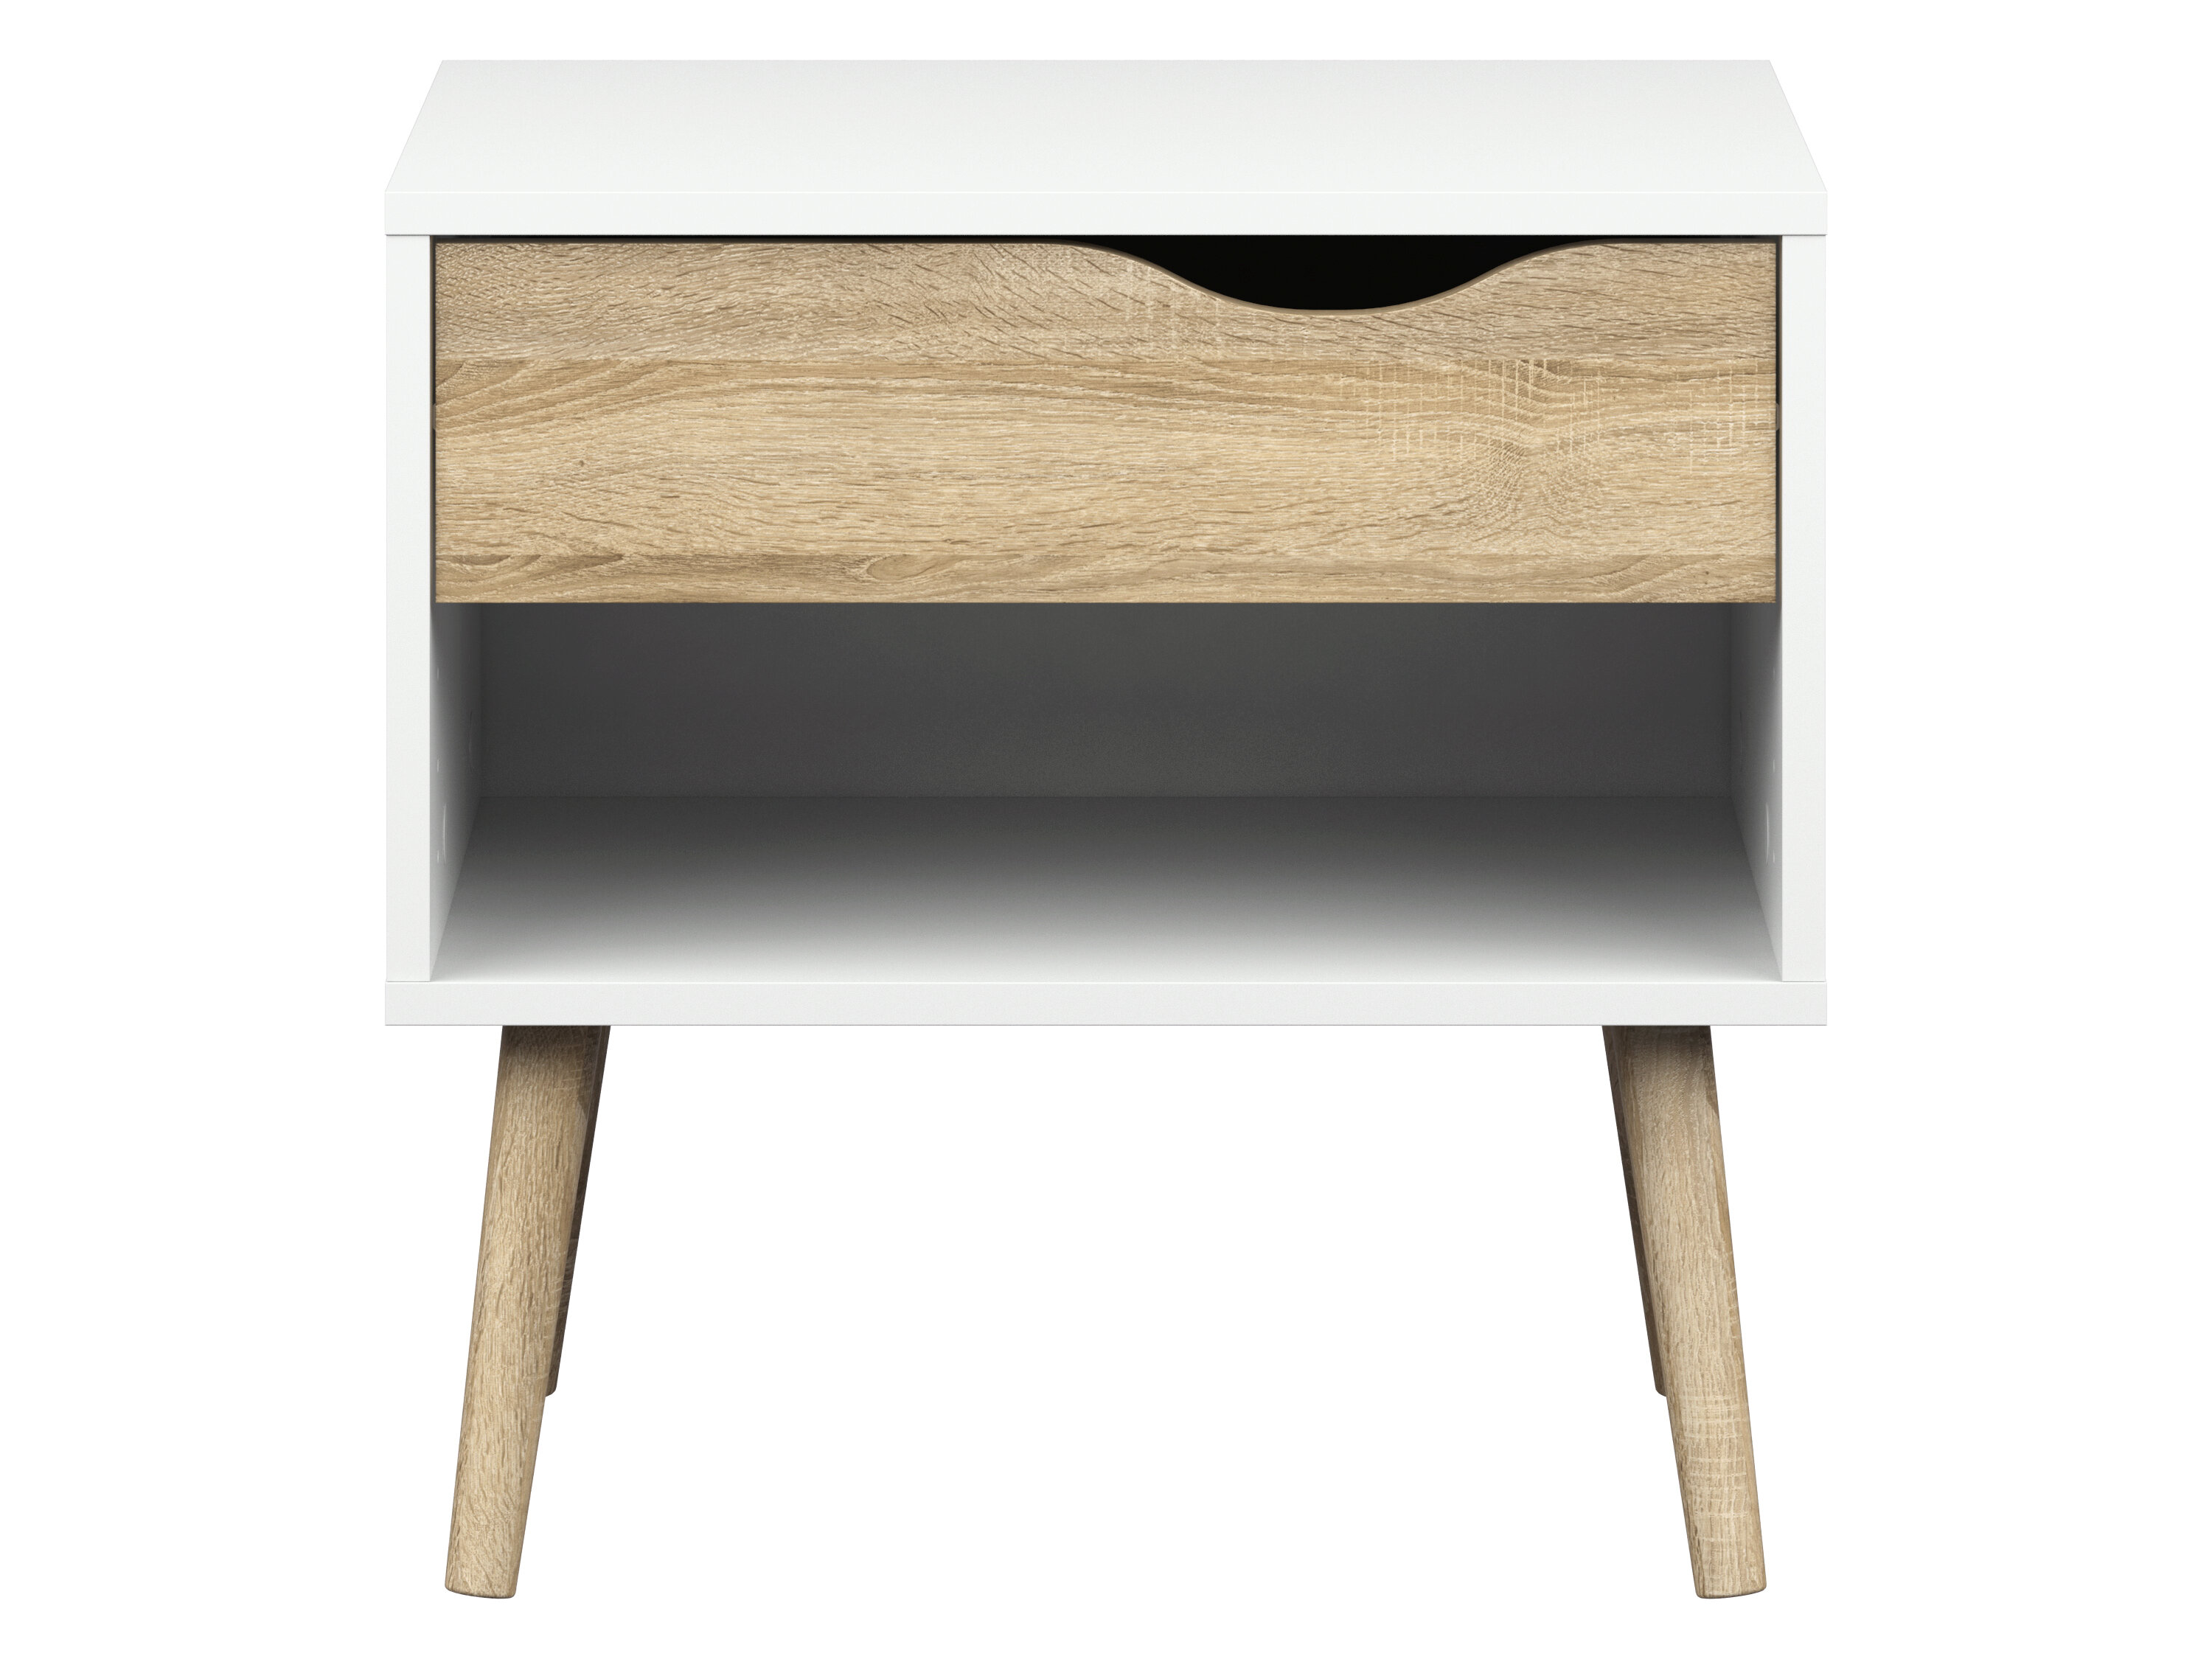 Terrific Modern Nightstands And Bedside Tables Allmodern Download Free Architecture Designs Scobabritishbridgeorg